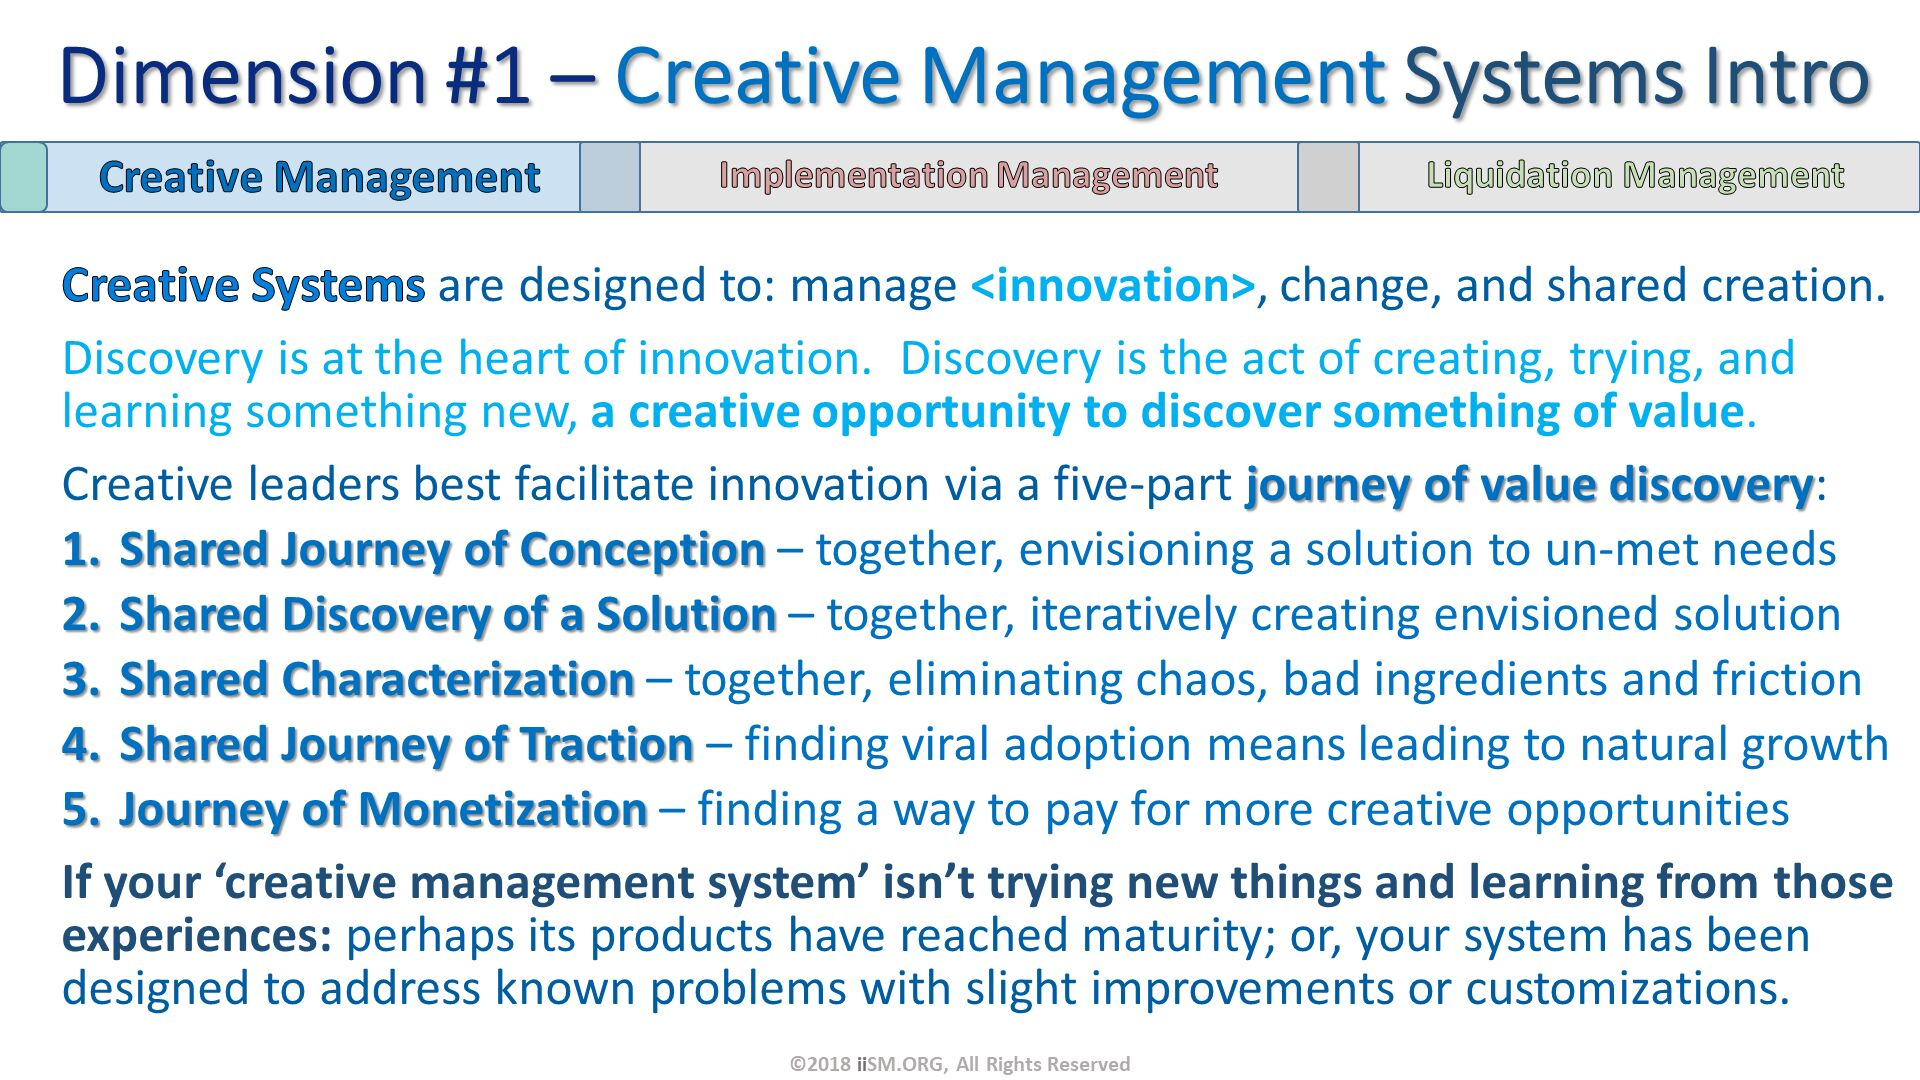 Creative Systems are designed to: manage <innovation>, change, and shared creation.   Discovery is at the heart of innovation.  Discovery is the act of creating, trying, and learning something new, a creative opportunity to discover something of value. Creative leaders best facilitate innovation via a five-part journey of value discovery: Shared Journey of Conception – together, envisioning a solution to un-met needs Shared Discovery of a Solution – together, iteratively creating envisioned solution Shared Characterization – together, eliminating chaos, bad ingredients and friction Shared Journey of Traction – finding viral adoption means leading to natural growth Journey of Monetization – finding a way to pay for more creative opportunities If your 'creative management system' isn't trying new things and learning from those experiences: perhaps its products have reached maturity; or, your system has been designed to address known problems with slight improvements or customizations. Dimension #1 – Creative Management Systems Intro. ©2018 iiSM.ORG, All Rights Reserved.